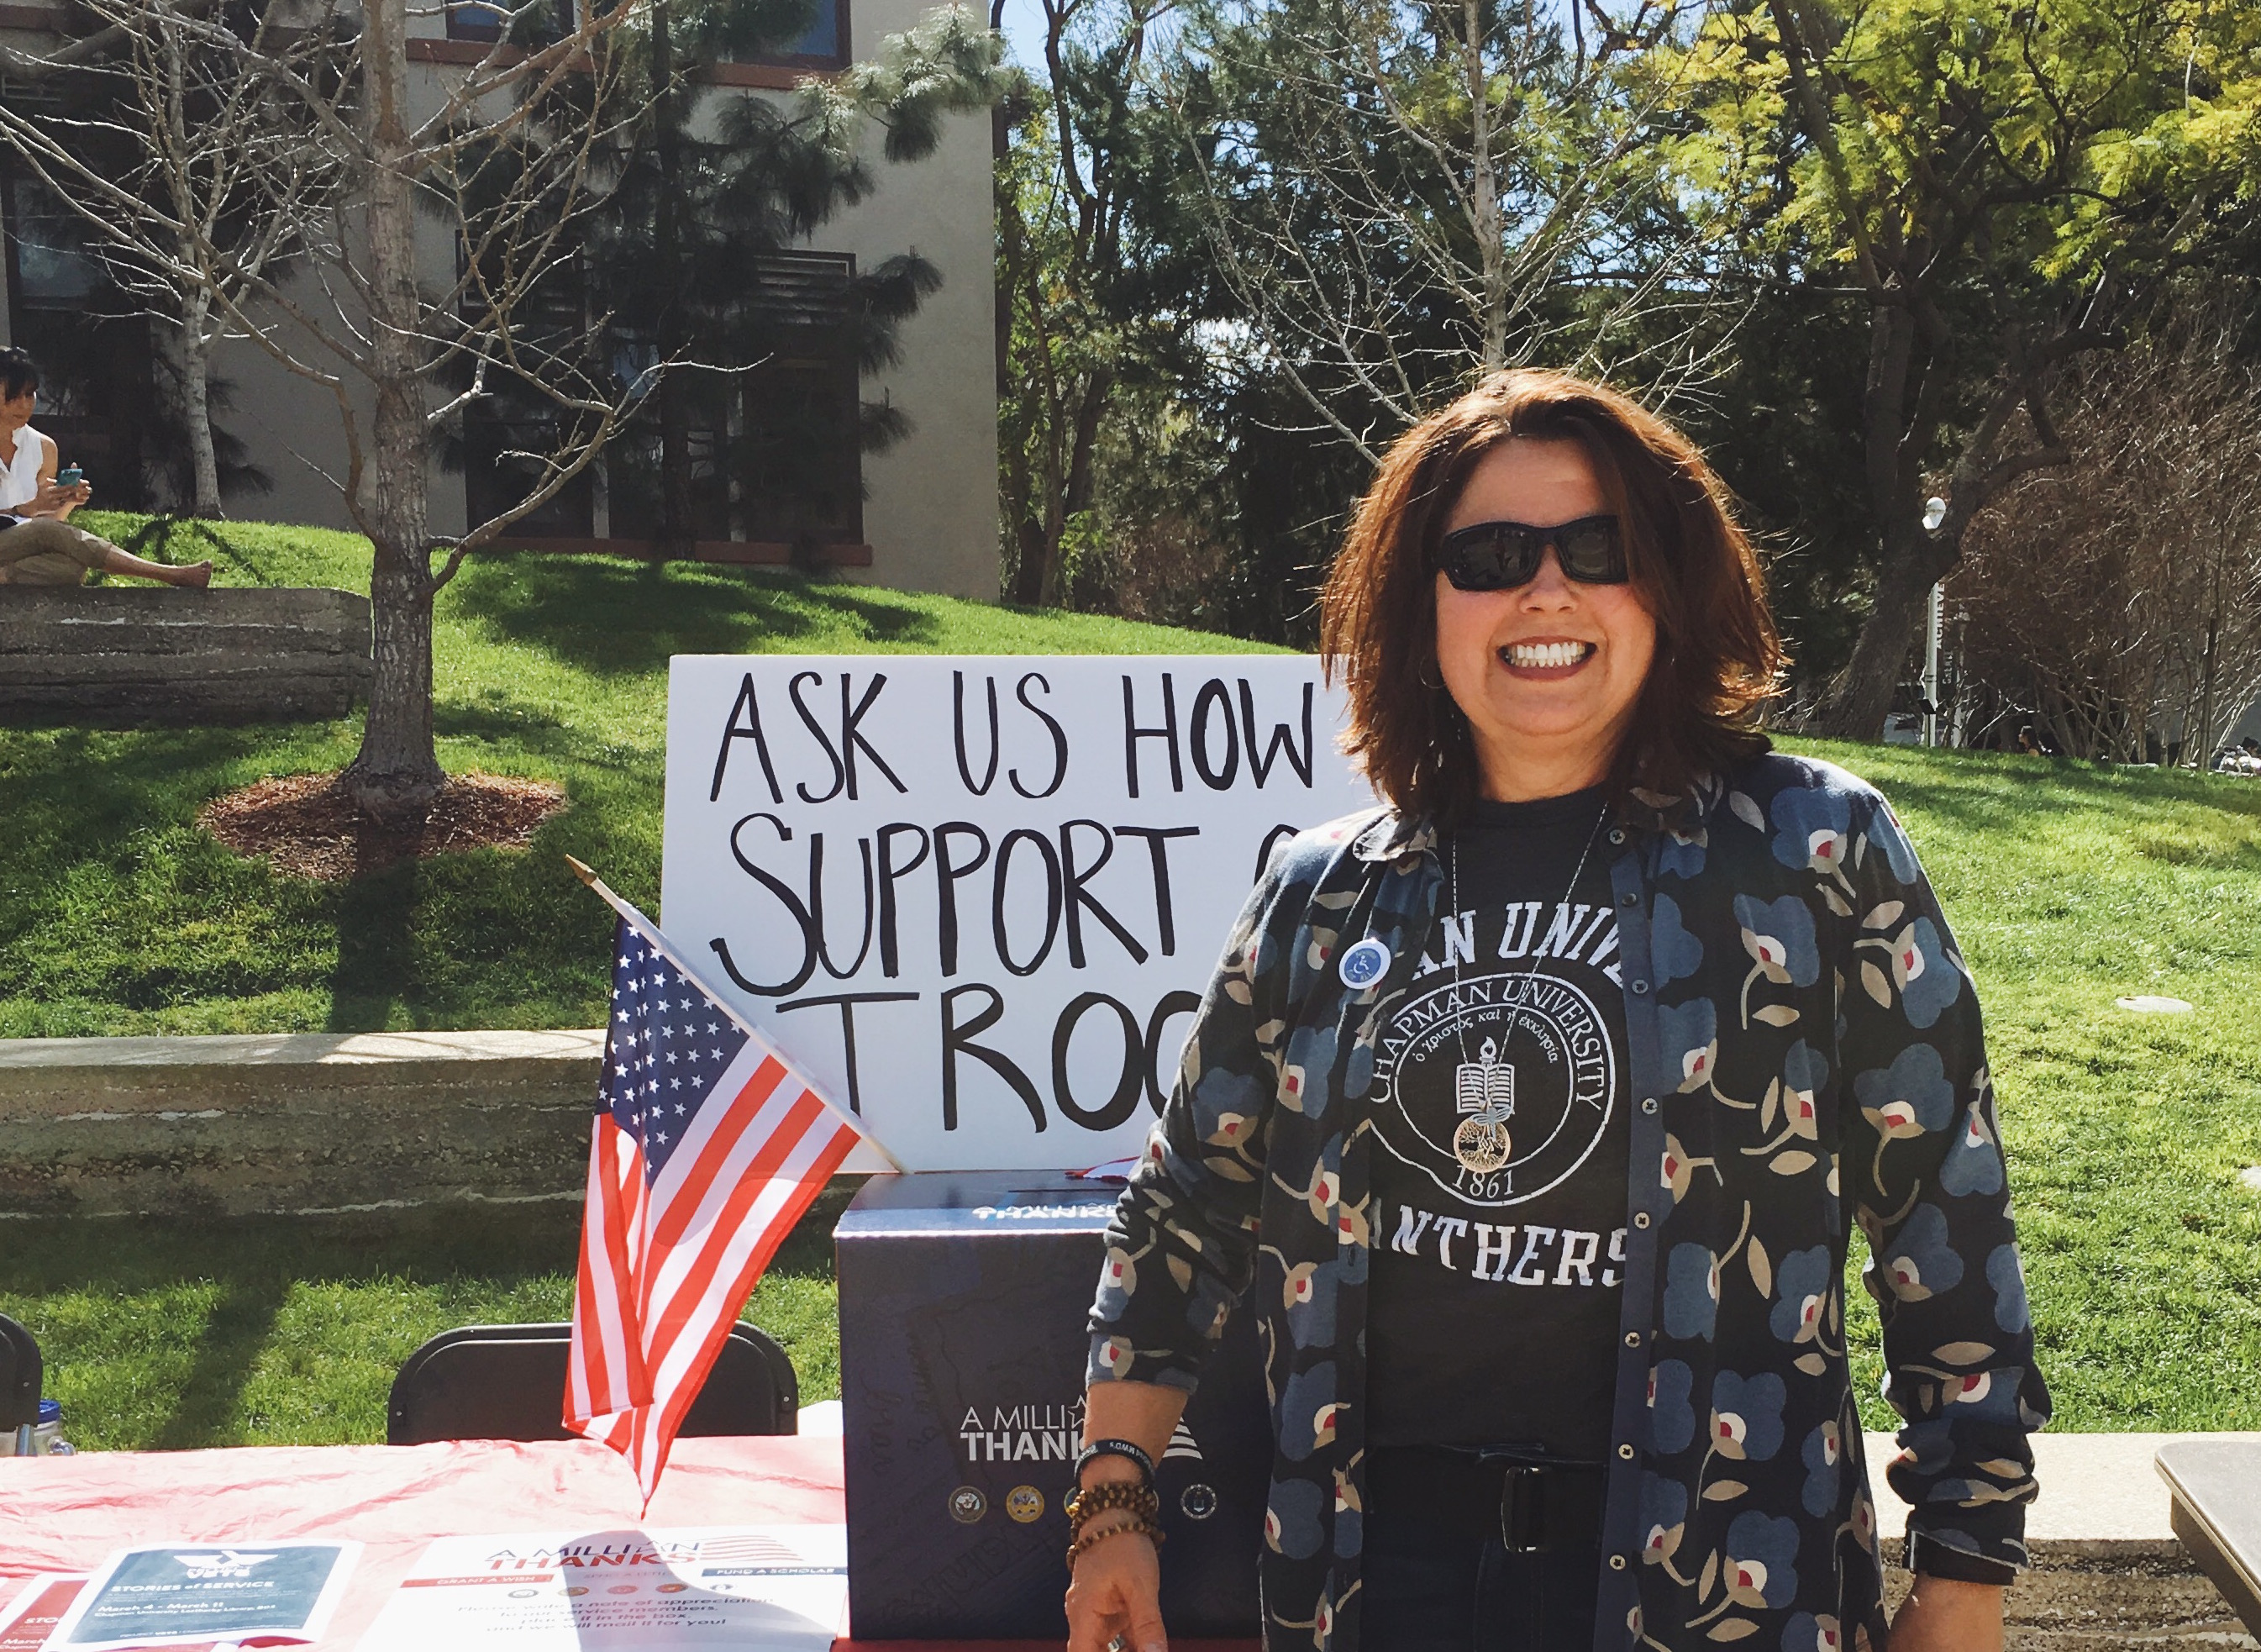 Woman smiling next to fundraising table for military.